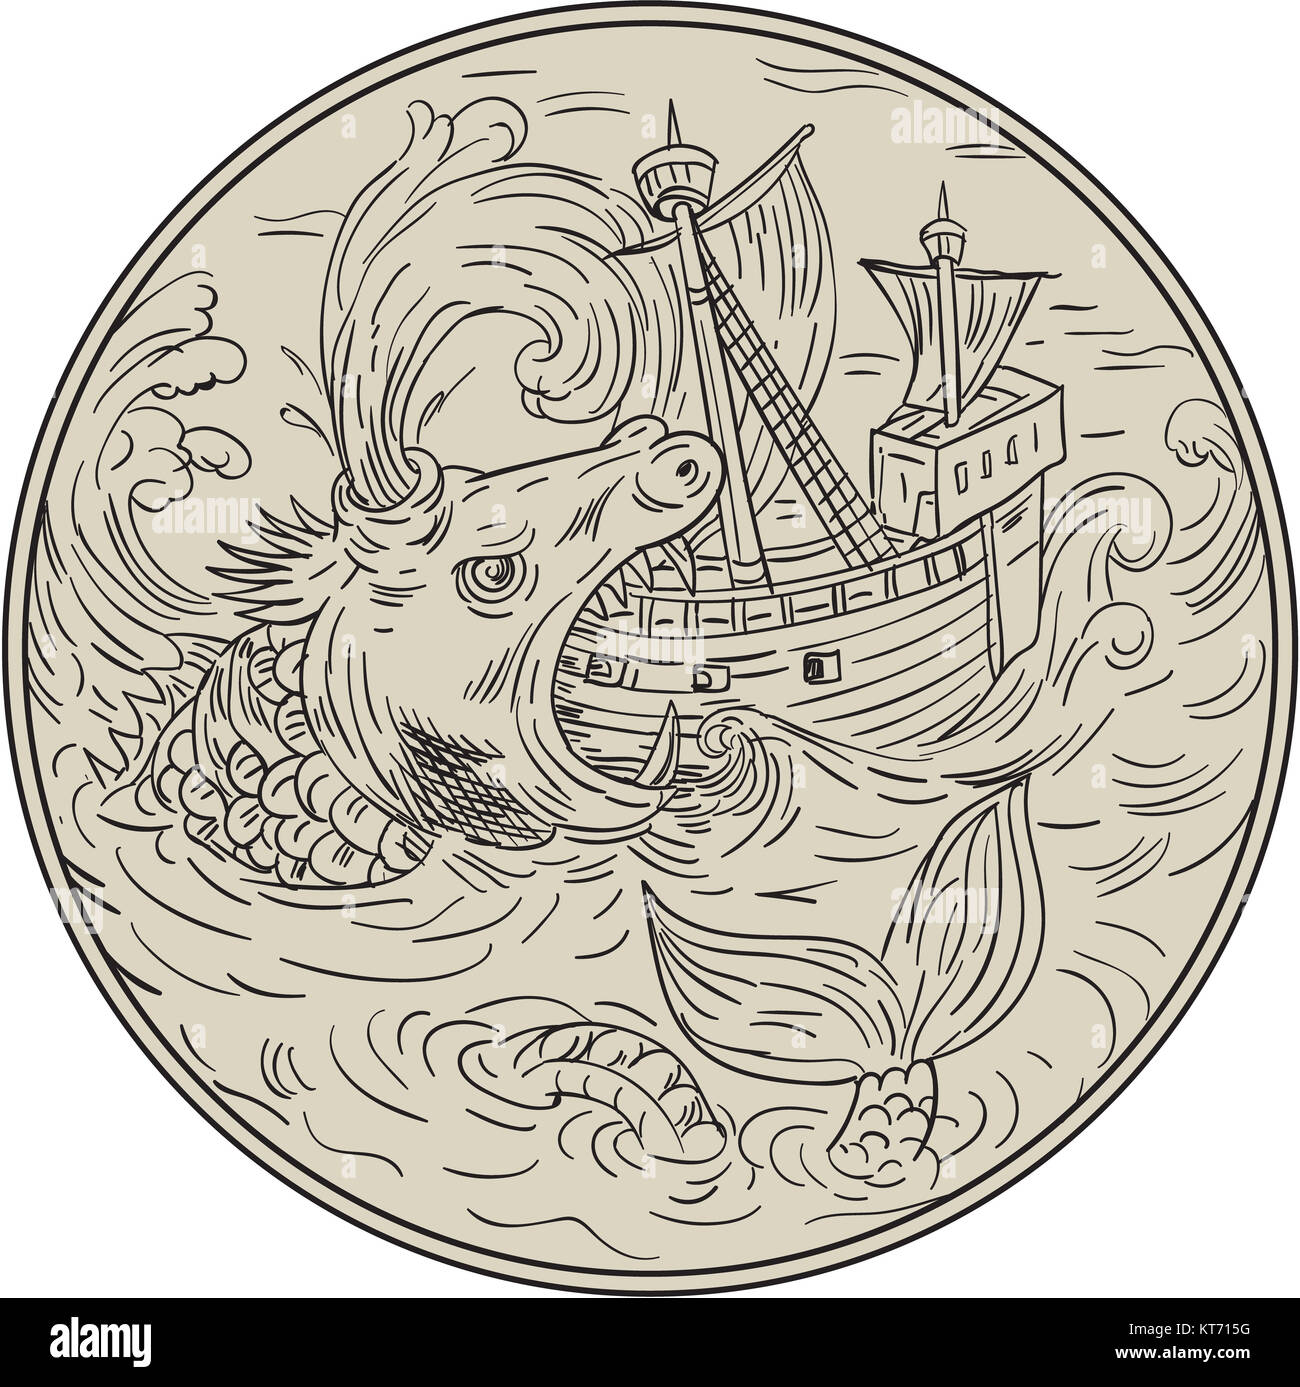 Ancient Sea Monster Attacking Sailing Ship Circle Drawing Stock Photo